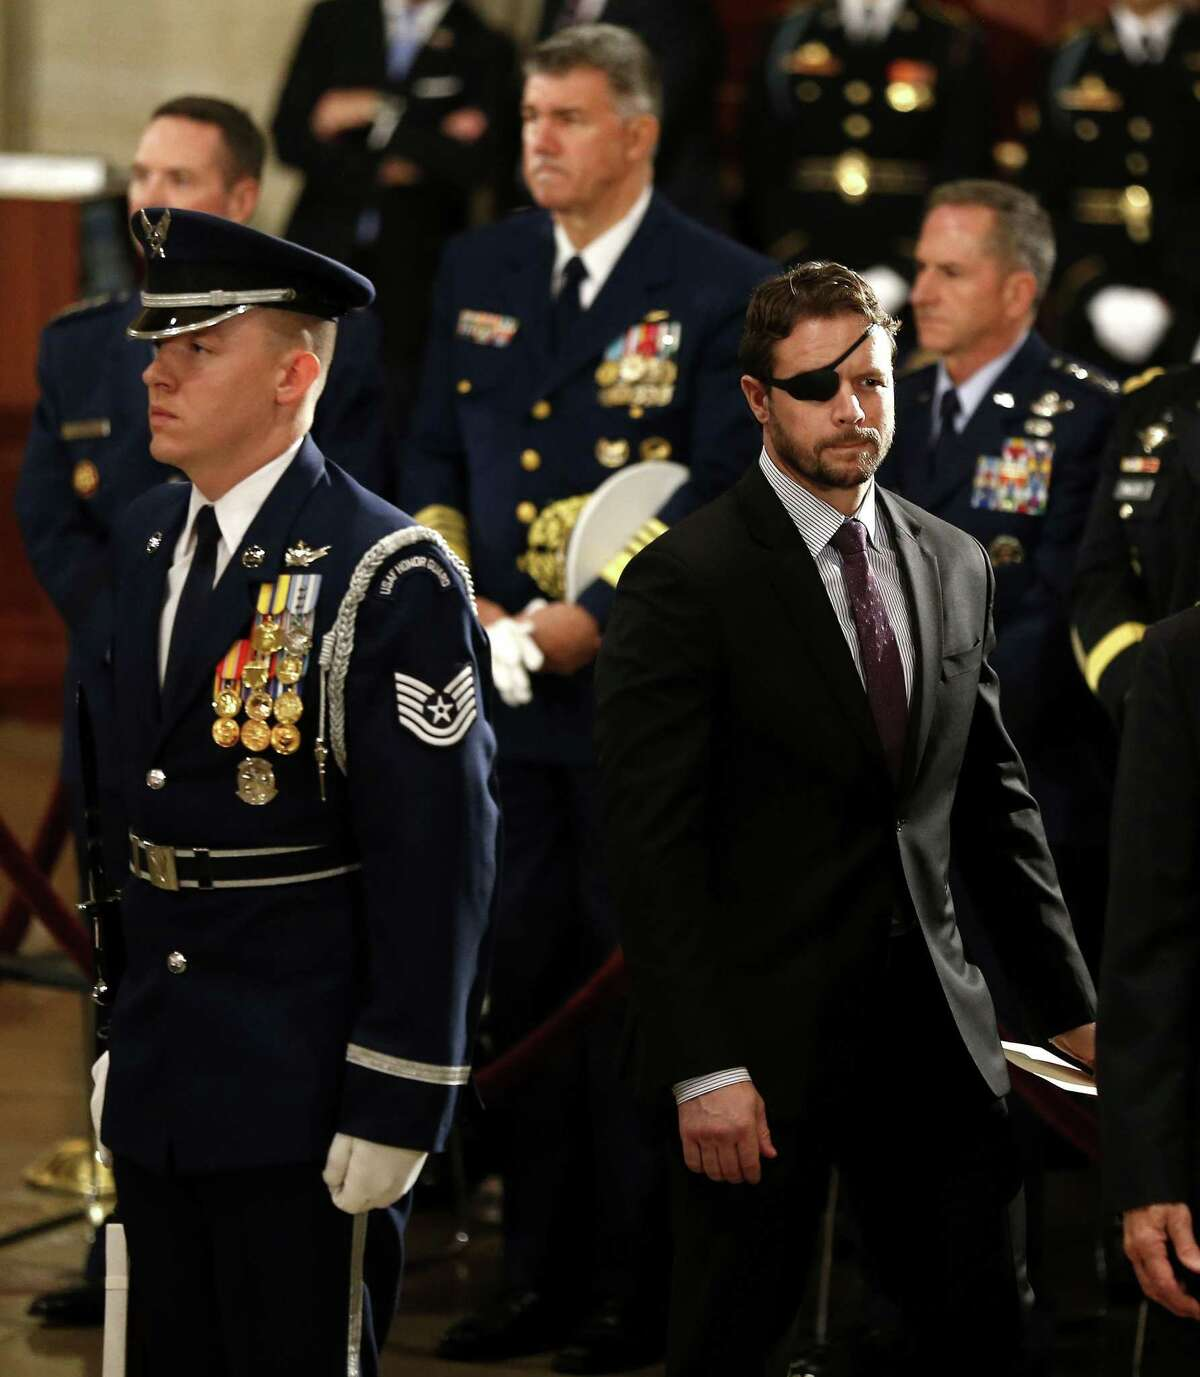 Congressman Dan Crenshaw walks past the casket of President George H.W. Bush during his State Funeral at the United States Capitol Rotunda, Monday, Dec. 3, 2018, in Washington. Bush will lie in state in the Rotunda until Wednesday morning.